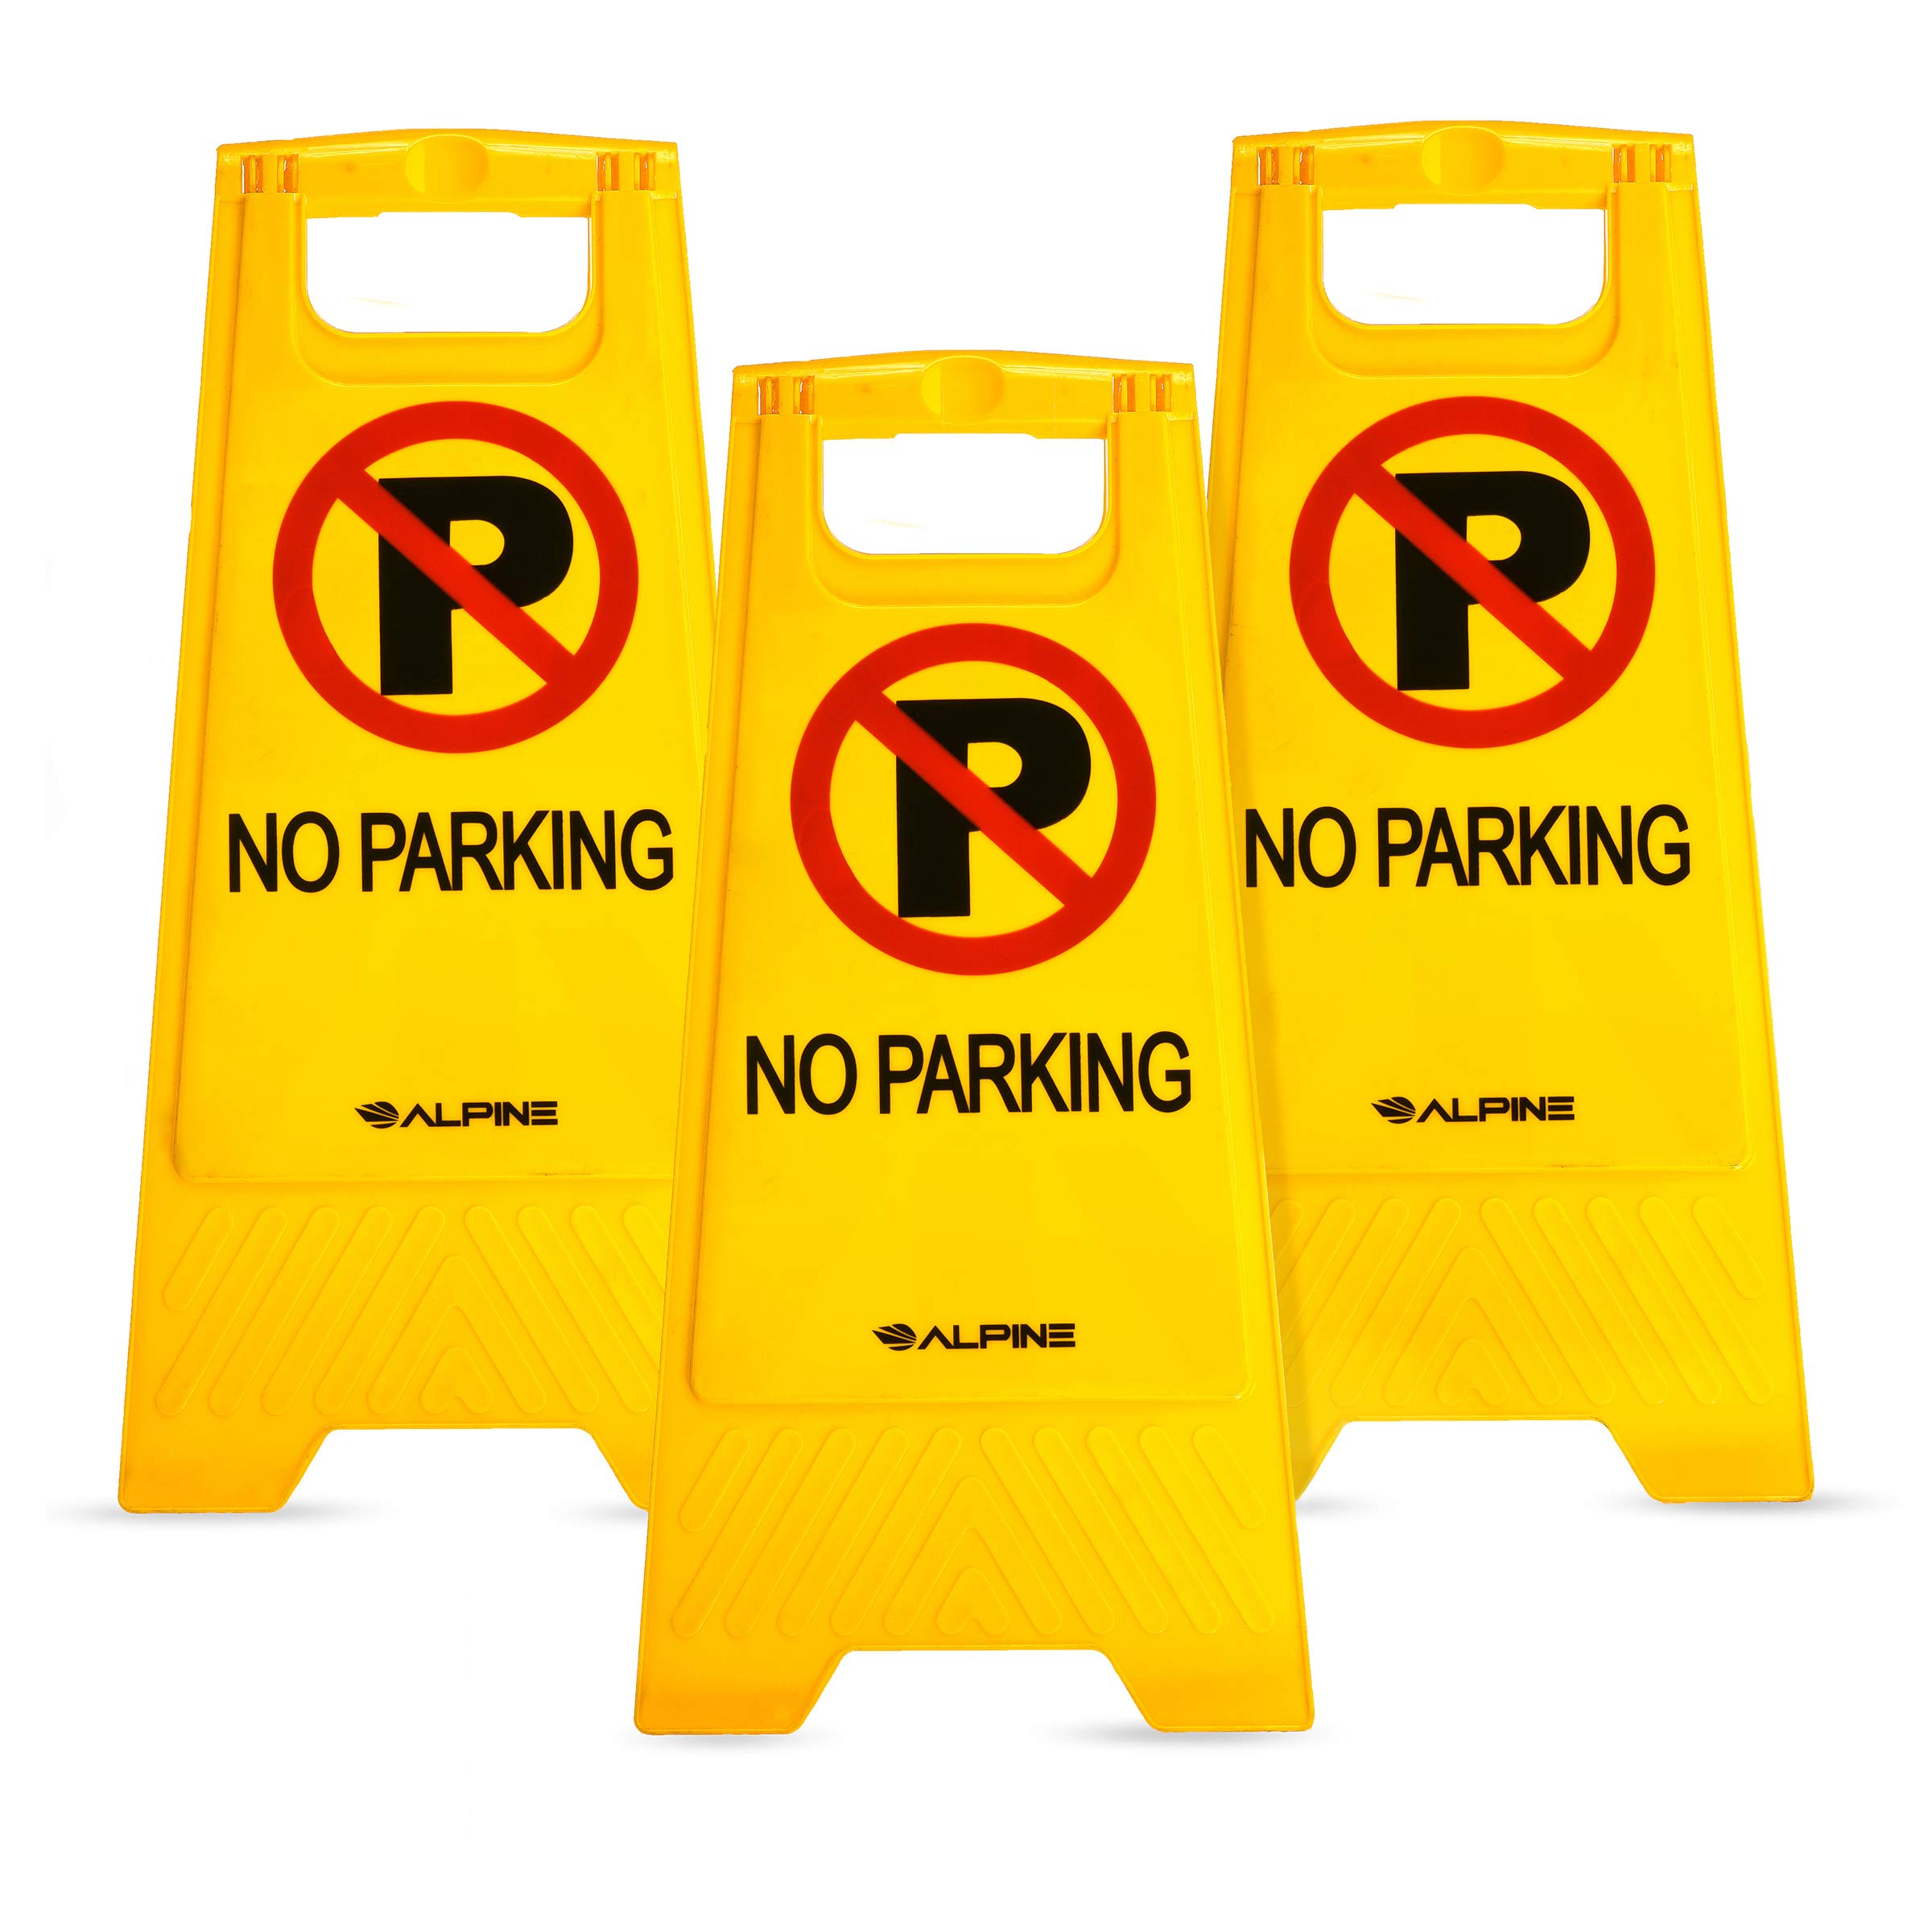 Alpine Industries Two-Sided Fold-Out No Parking Signs, Pack of 3 - Portable Outdoor Folding Floor Sign - Yellow Self Standing & Easy to Read Plastic Board for Restaurants and Businesses by Alpine Industries